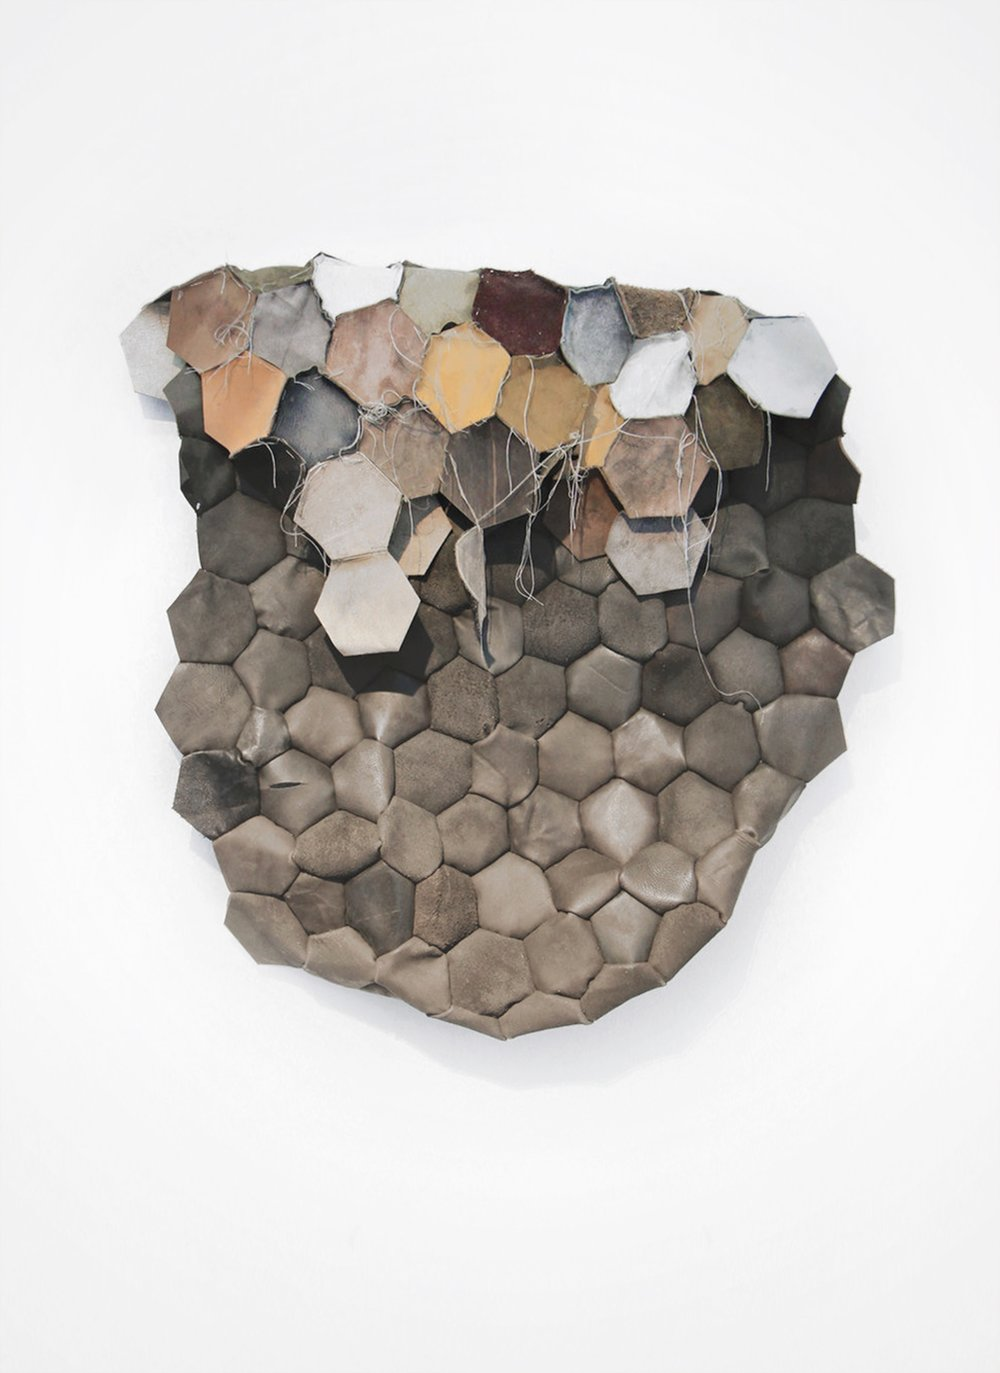 Unifying polarities , Found leather treated with copper slag powder.